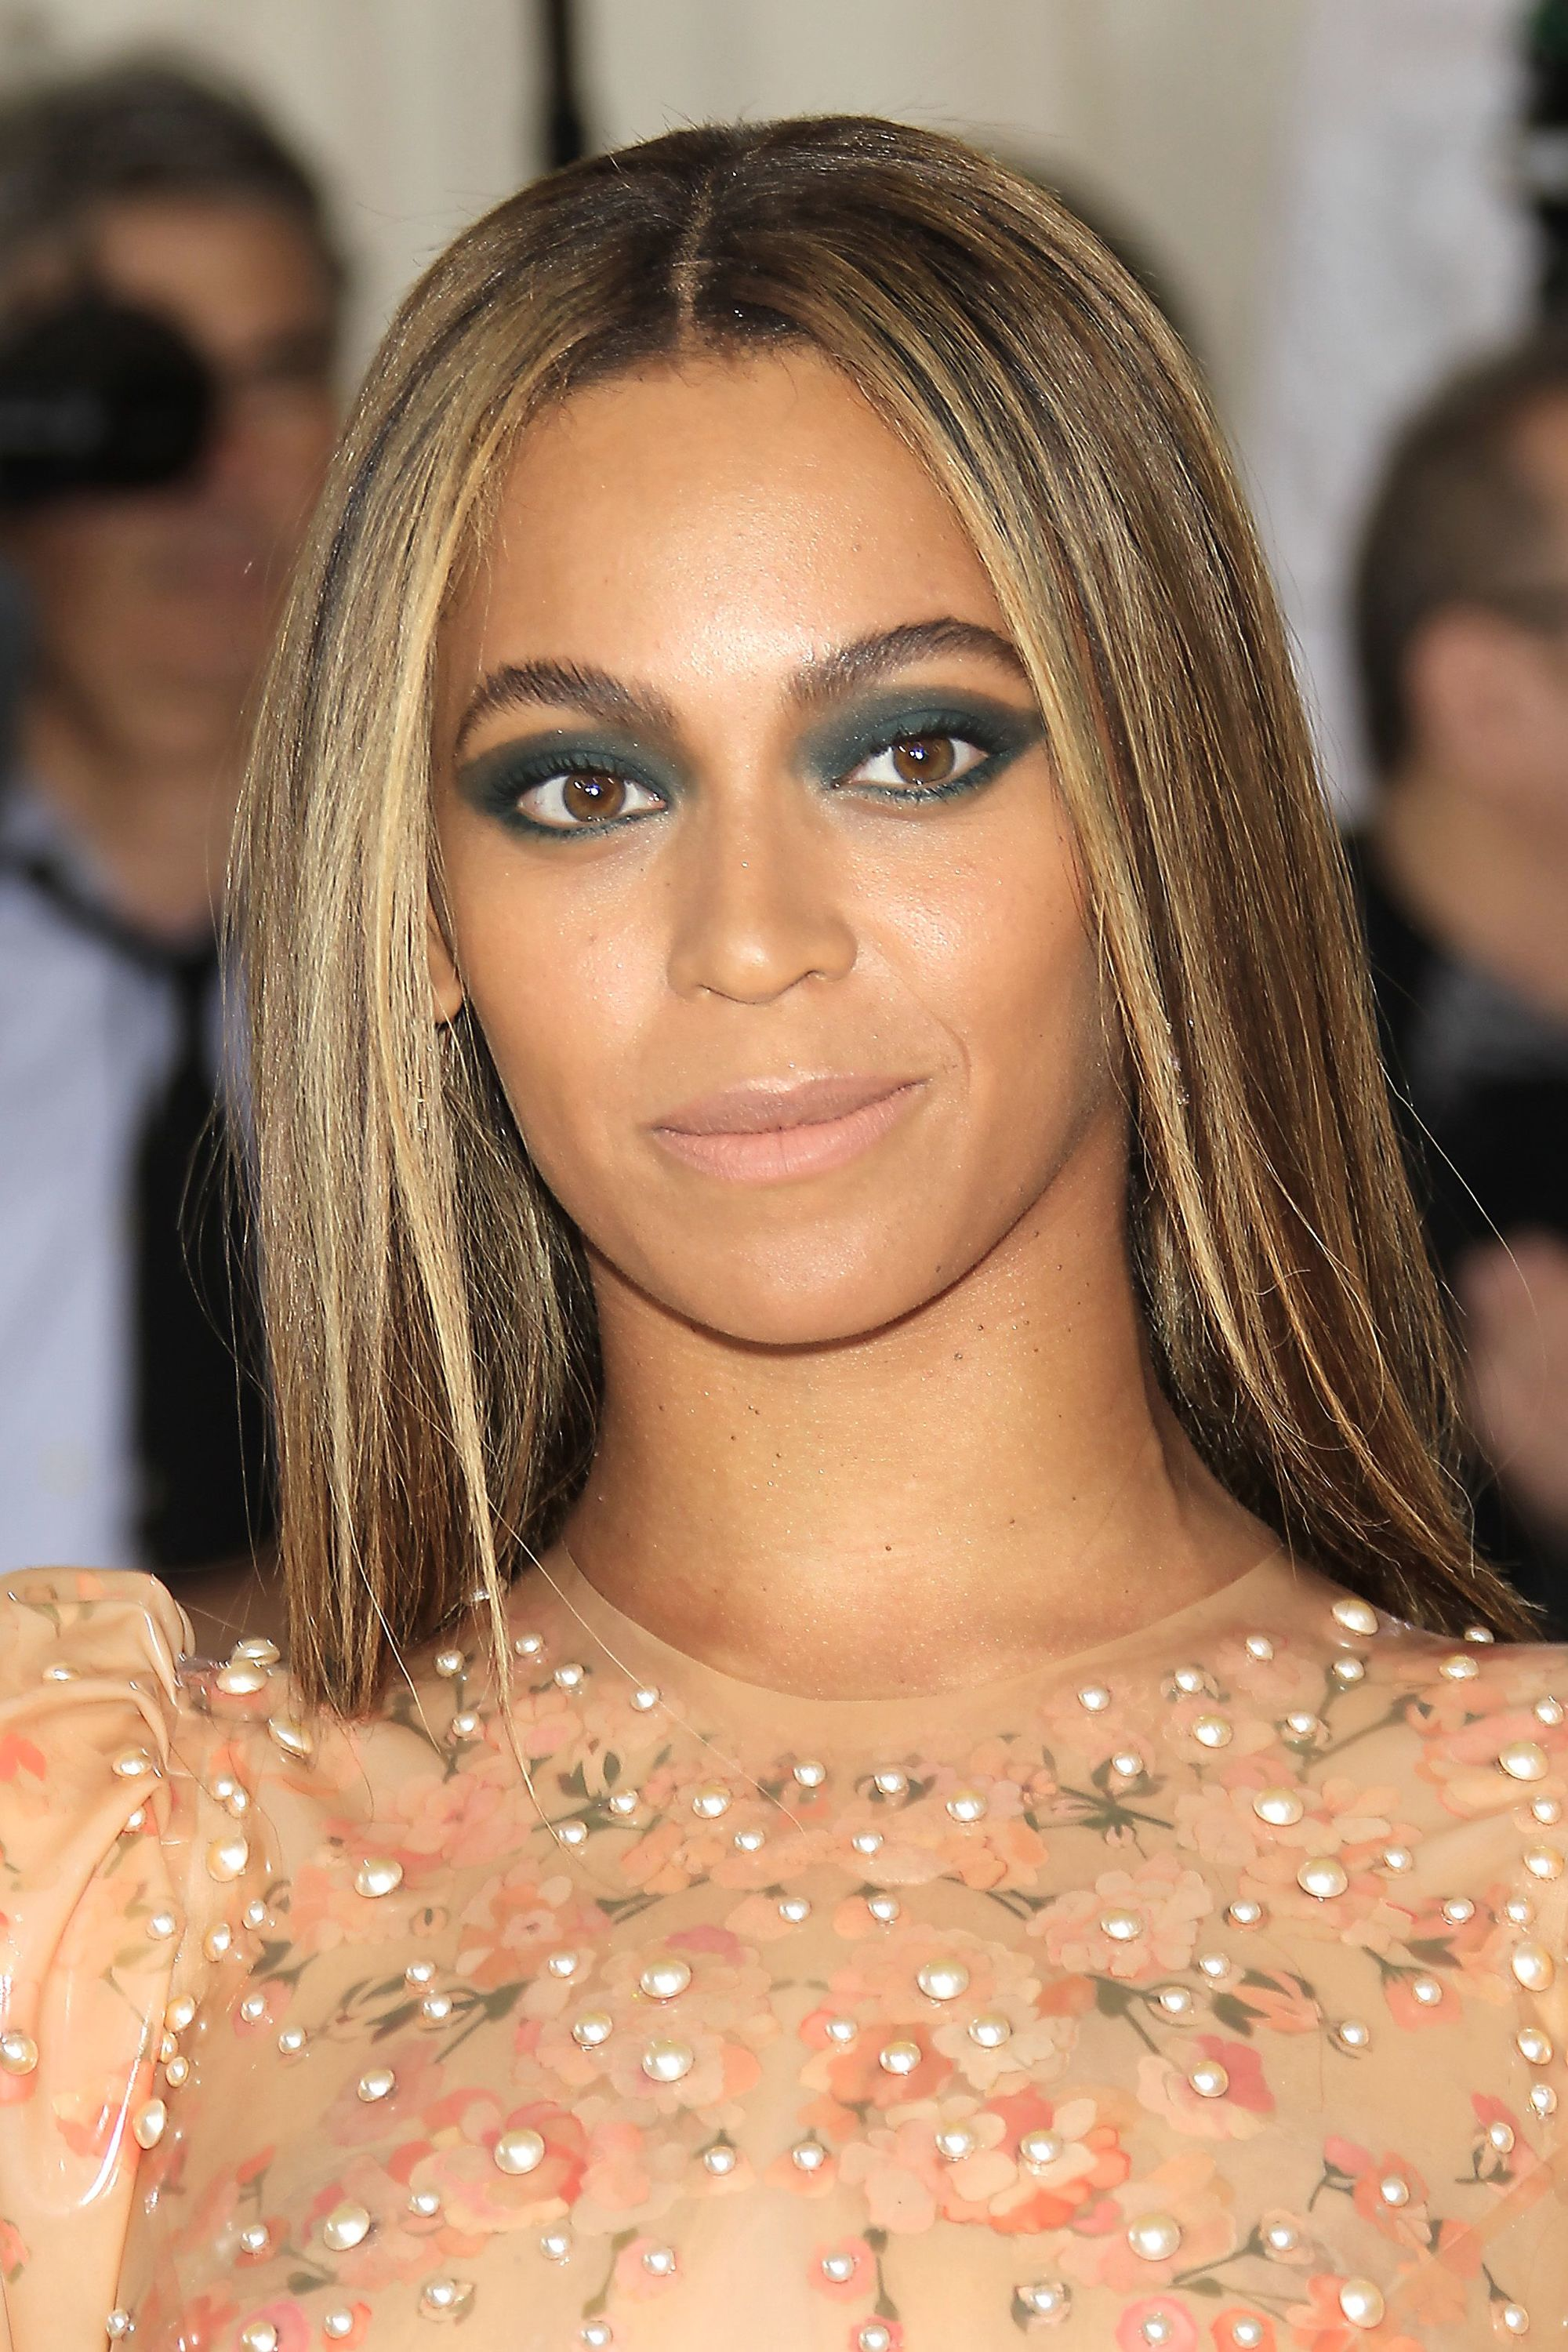 Brown hair with blonde highlights: Beyonce with straight brunette hair with caramel blonde highlights, with dark eyeshadow